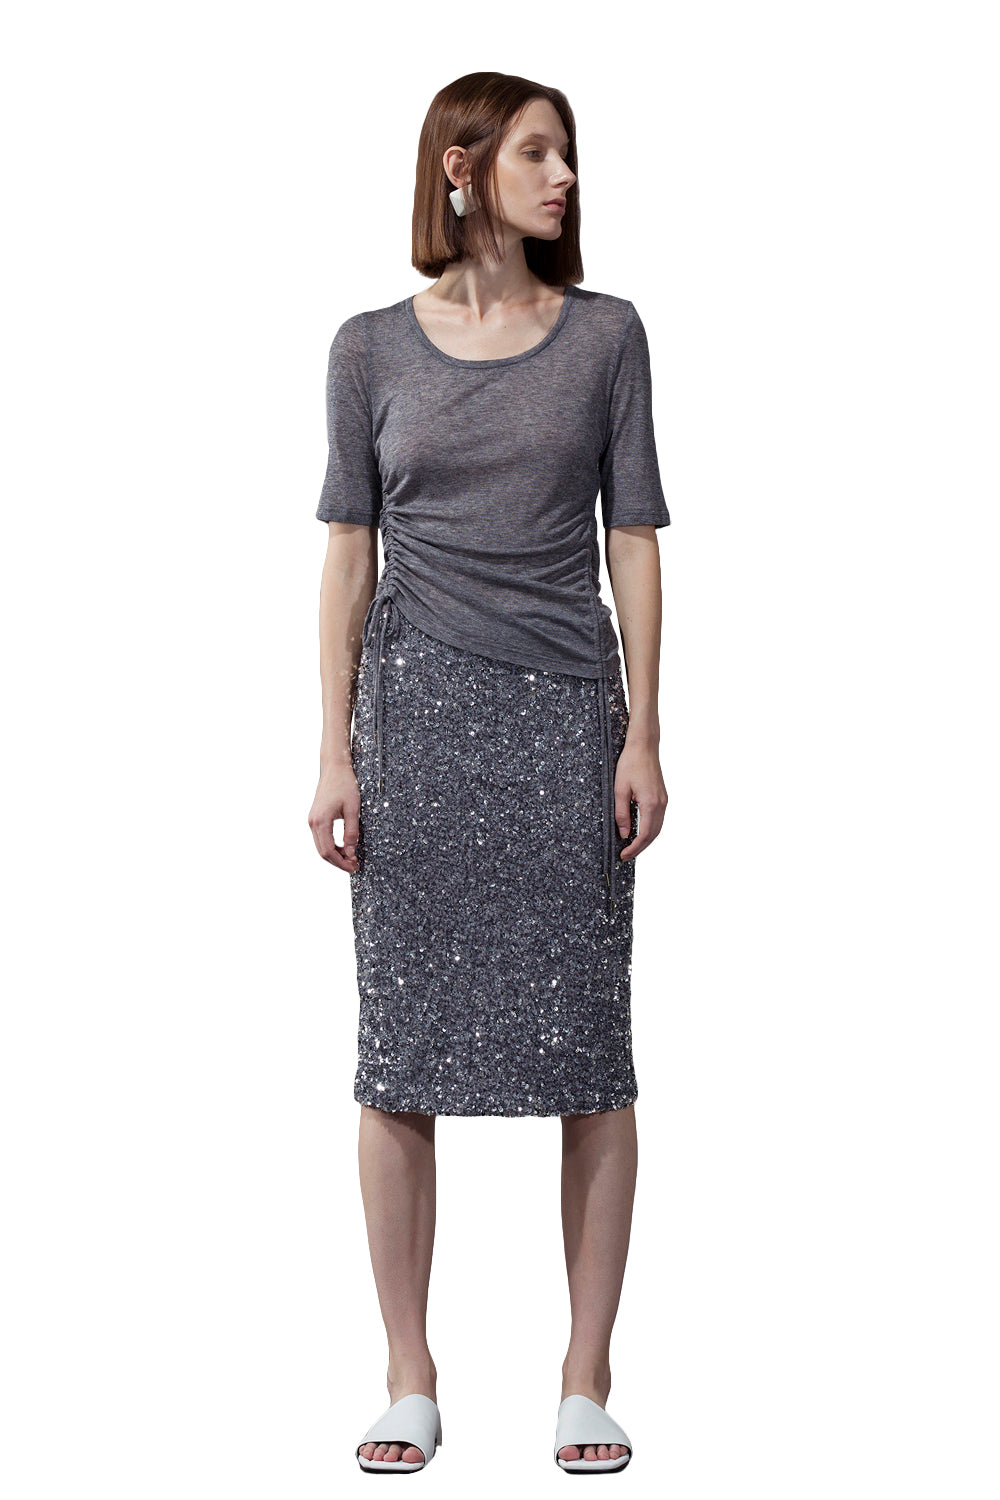 Sequined Skirt - Gray